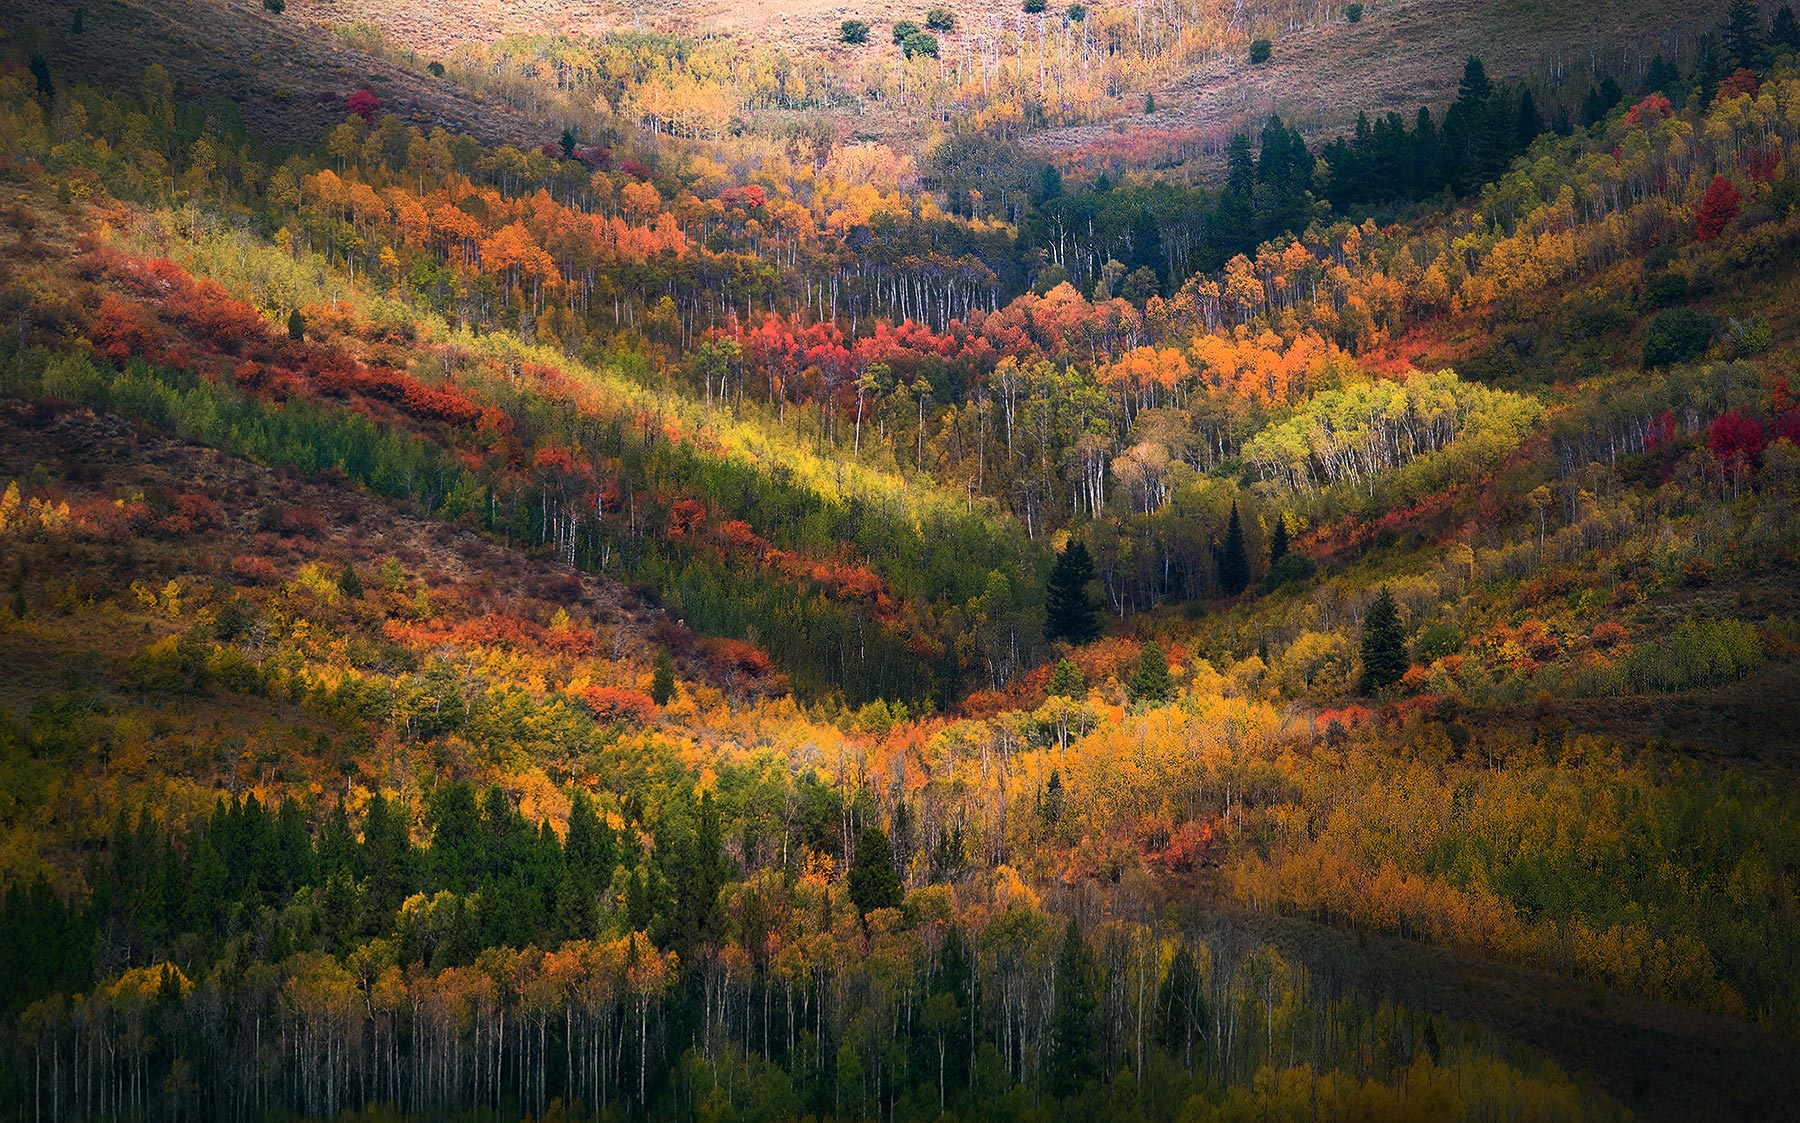 Layers of Aspens in Fall with beautiful light.